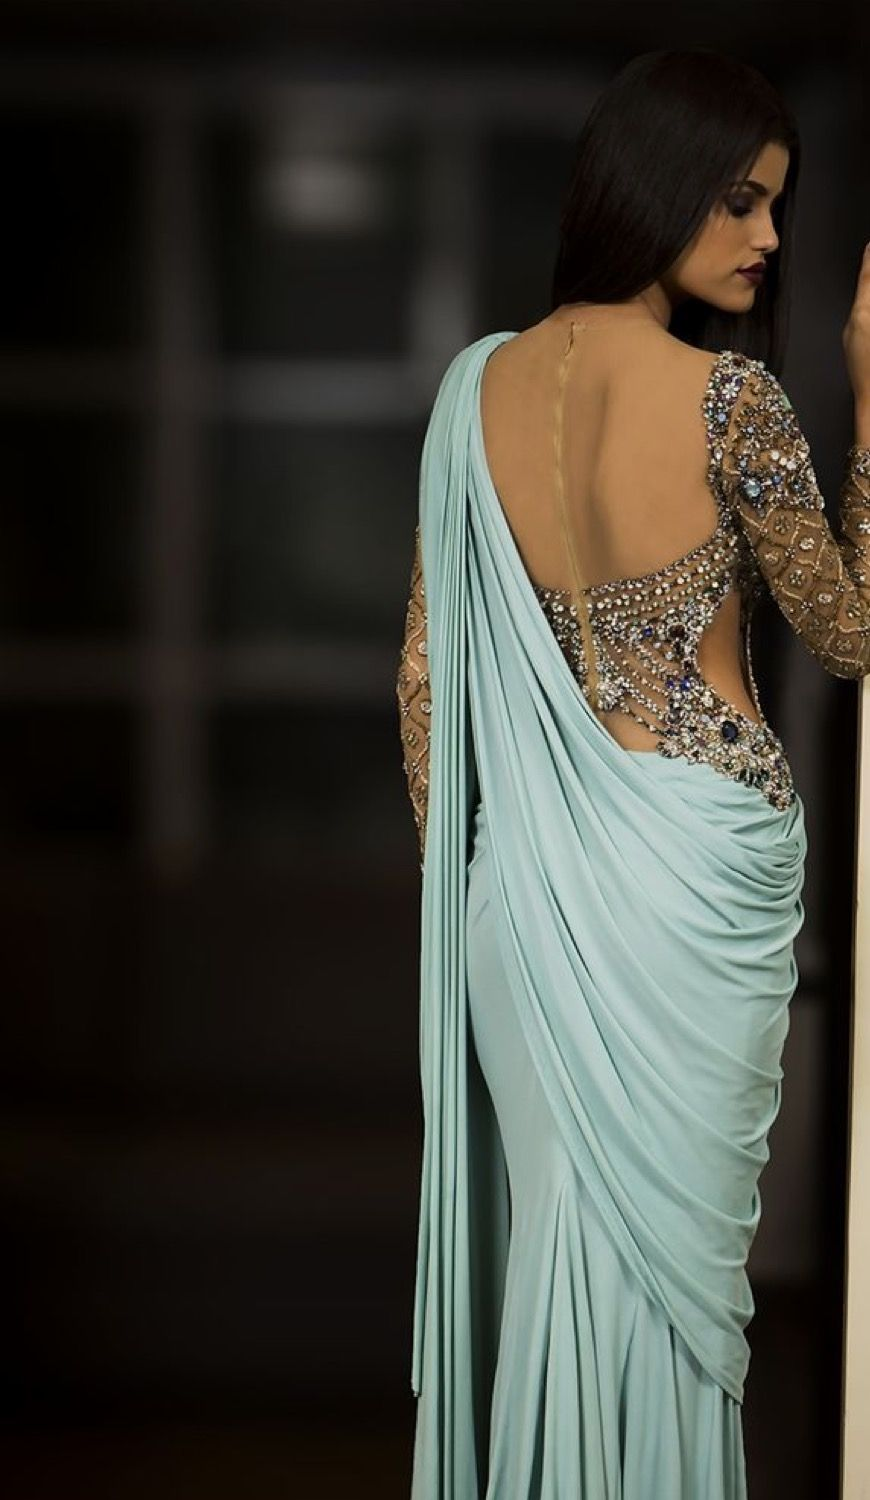 Pin by Dini De Alwis on VOGUE | Pinterest | Saree, Indian fashion ...